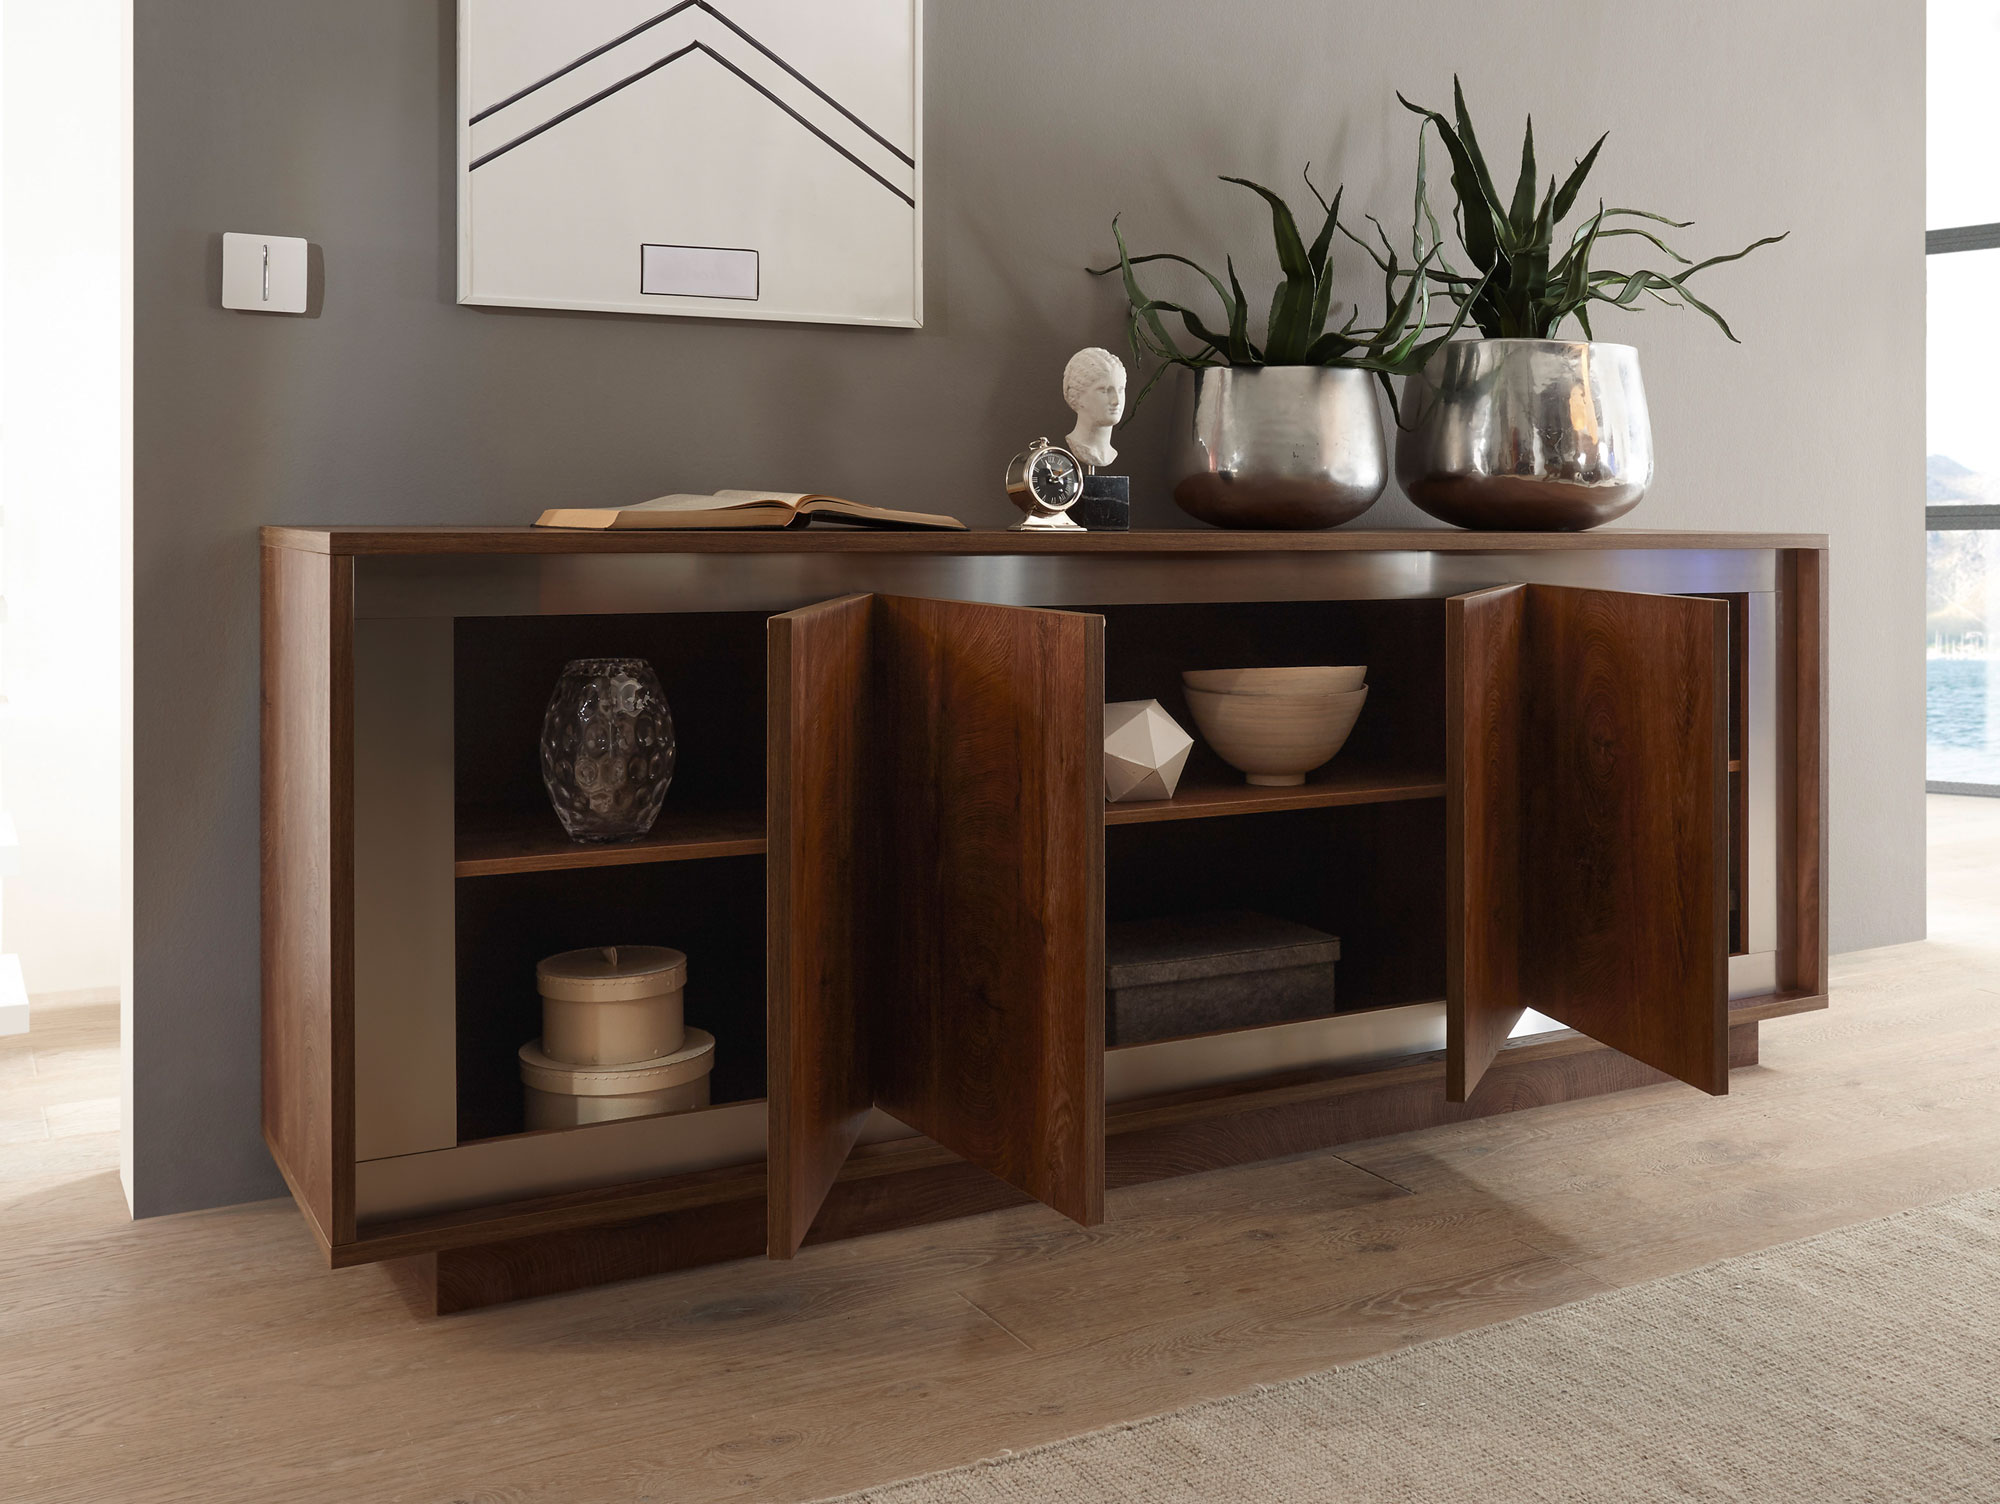 santafee sideboard mit 4 t ren eiche cognac. Black Bedroom Furniture Sets. Home Design Ideas